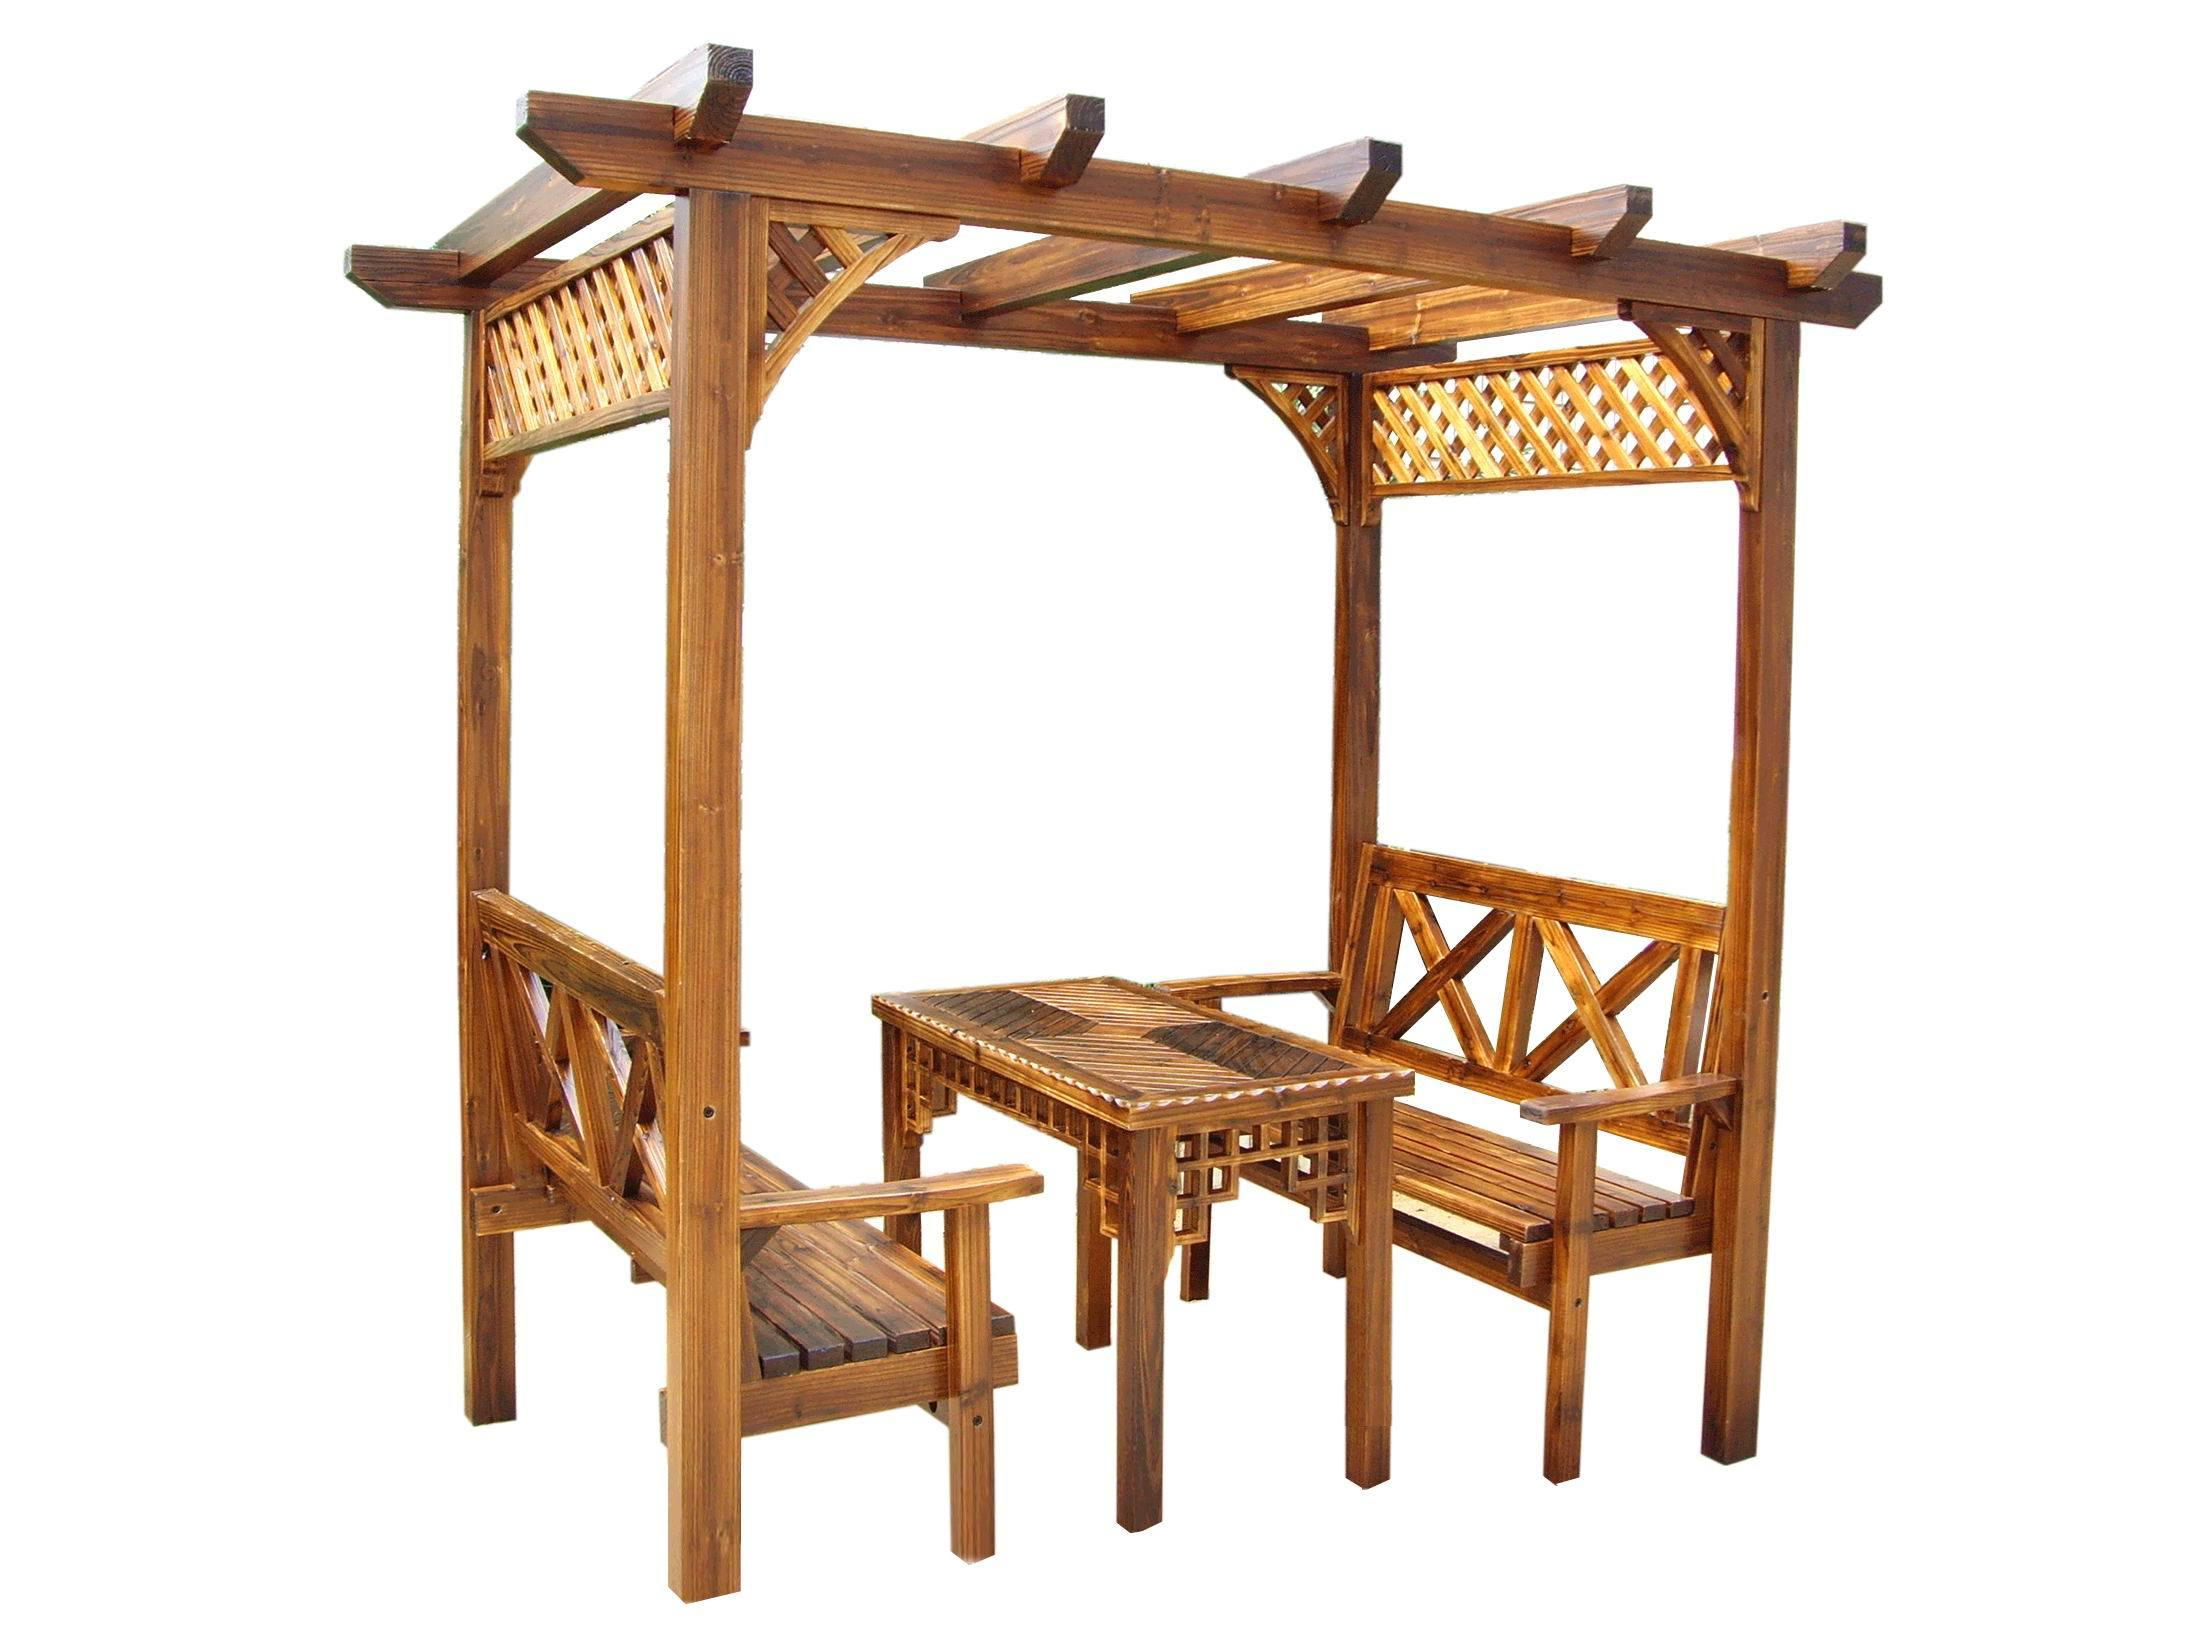 Outdoor furniture woodworking plans new design woodworking Www wooden furniture com